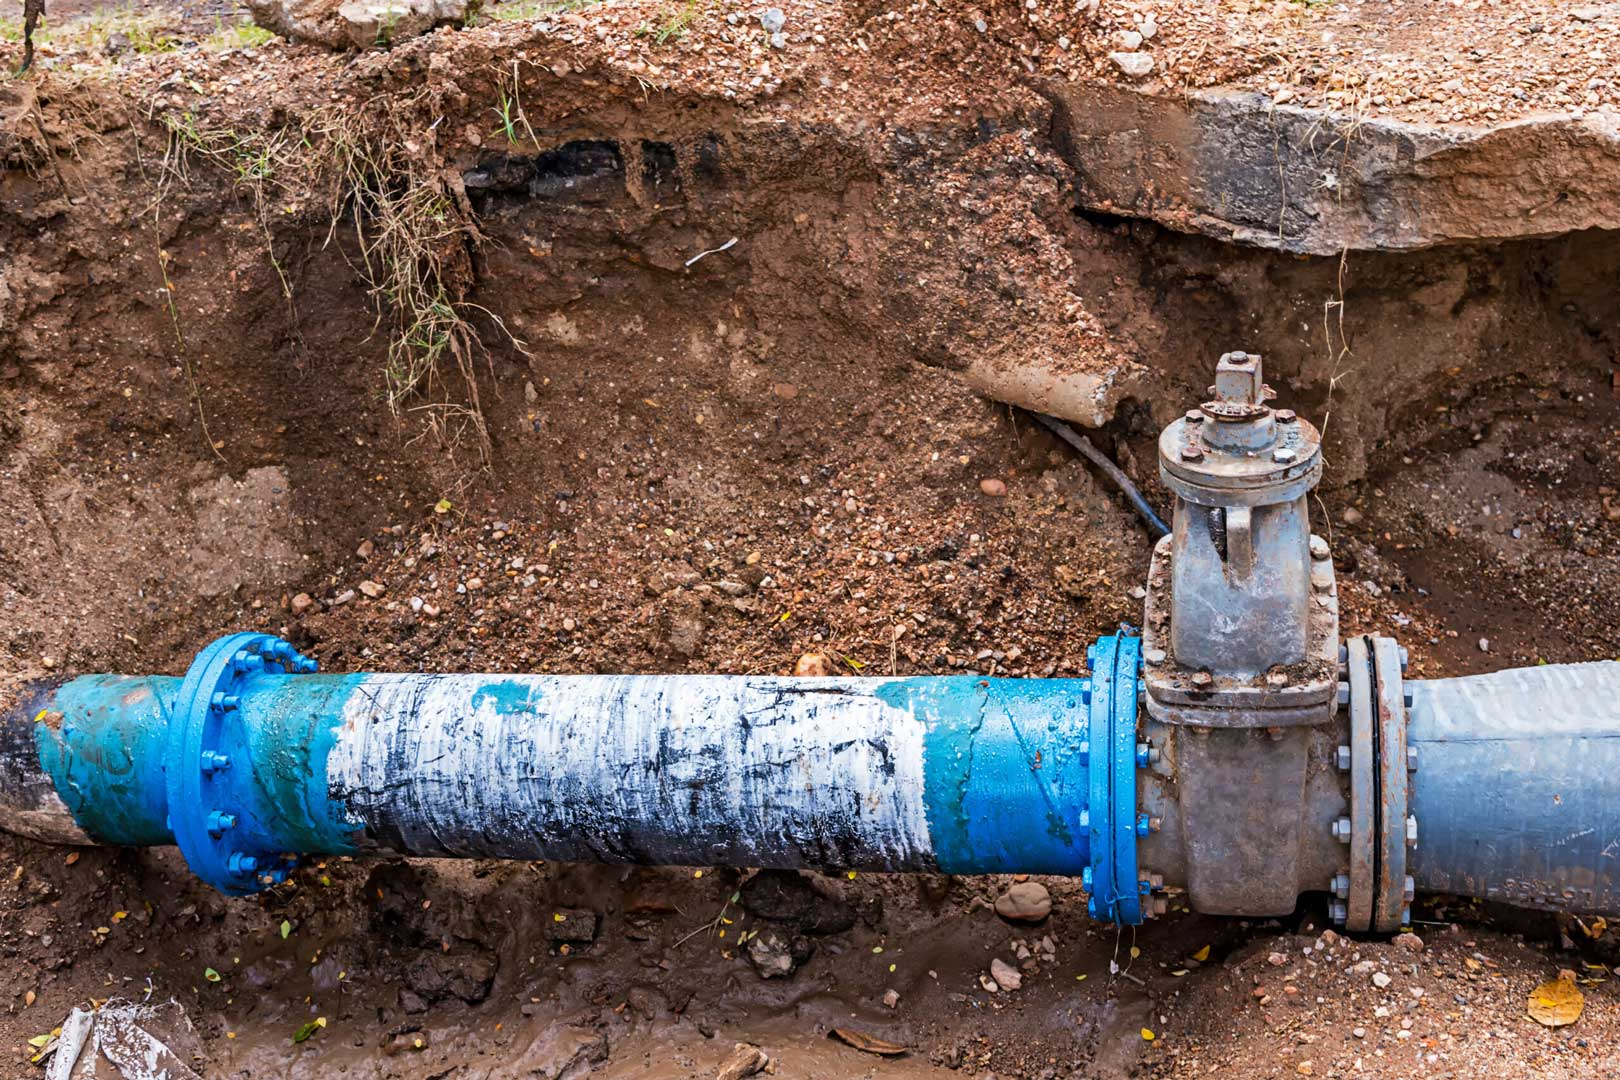 Blue-water-pipes-buried-underground